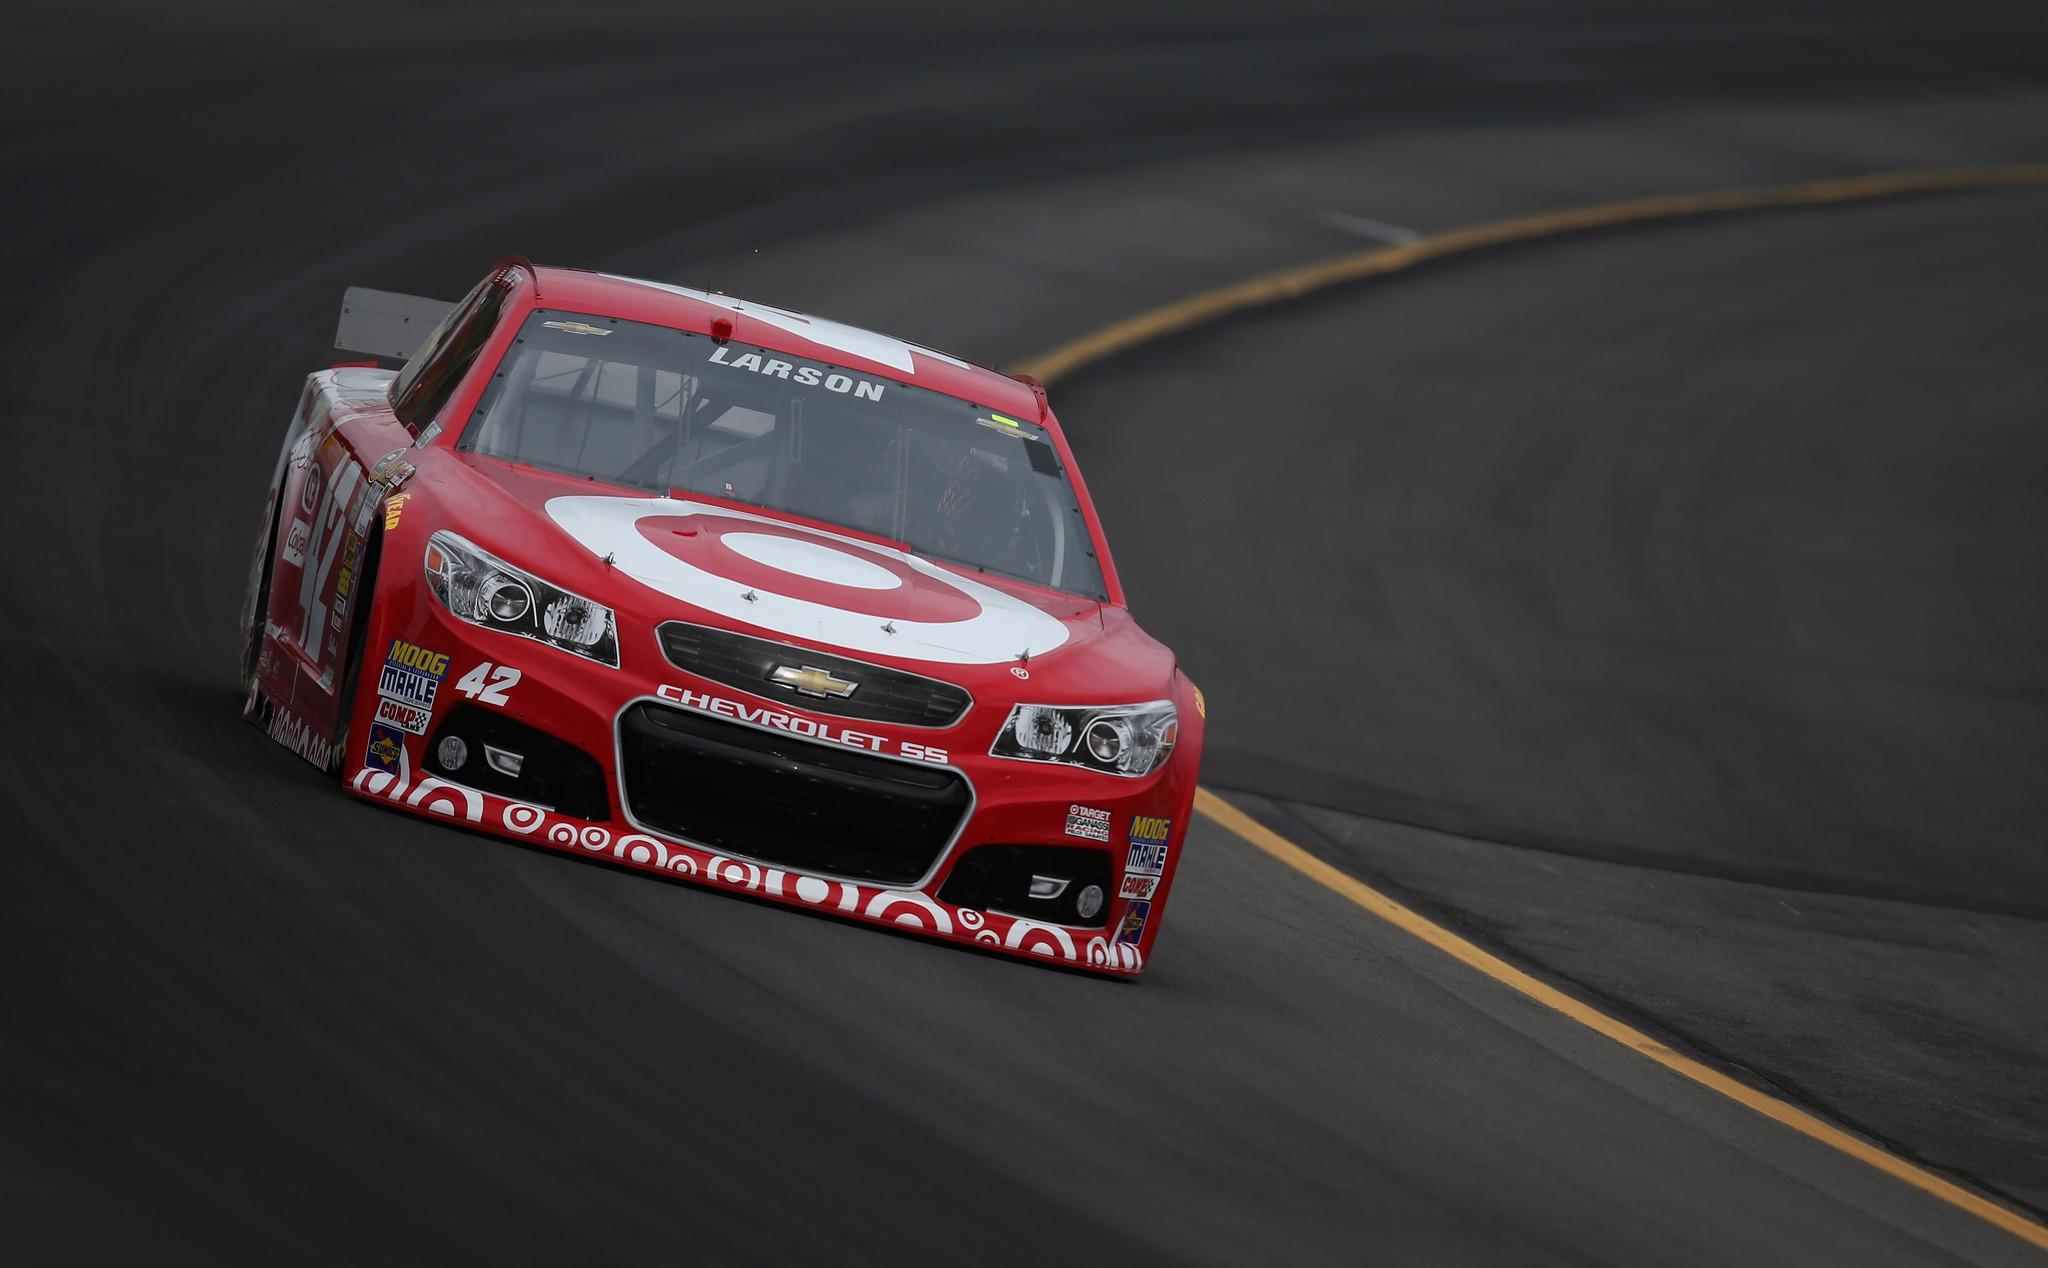 Kyle Larson Sets Mark For Top Speed In Qualifying At Pocono Raceway